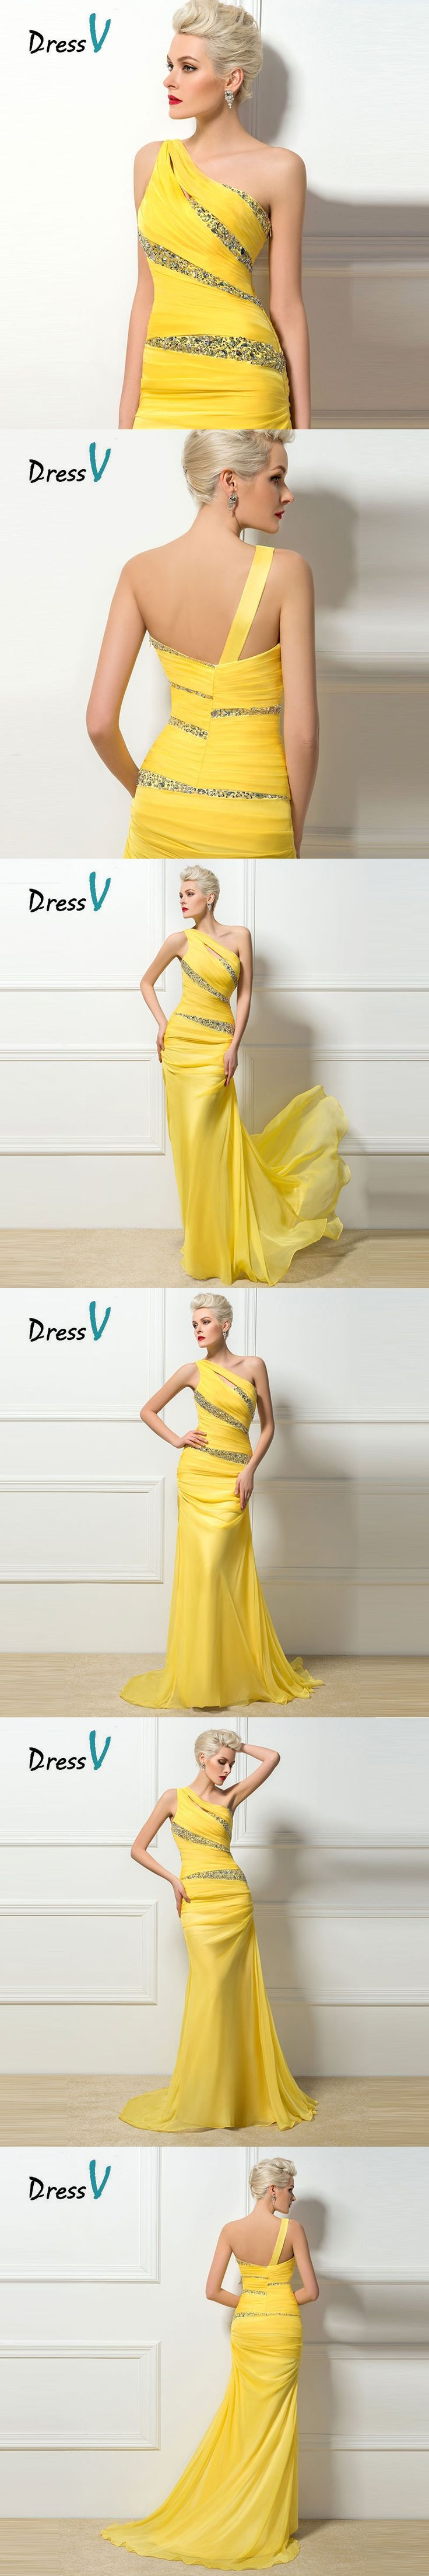 Dressv Trumpet/Mermaid Yellow Evening Dresses One shoulder Beaded Formal Sequins Long Prom Party Dress sexy sheath evening dress